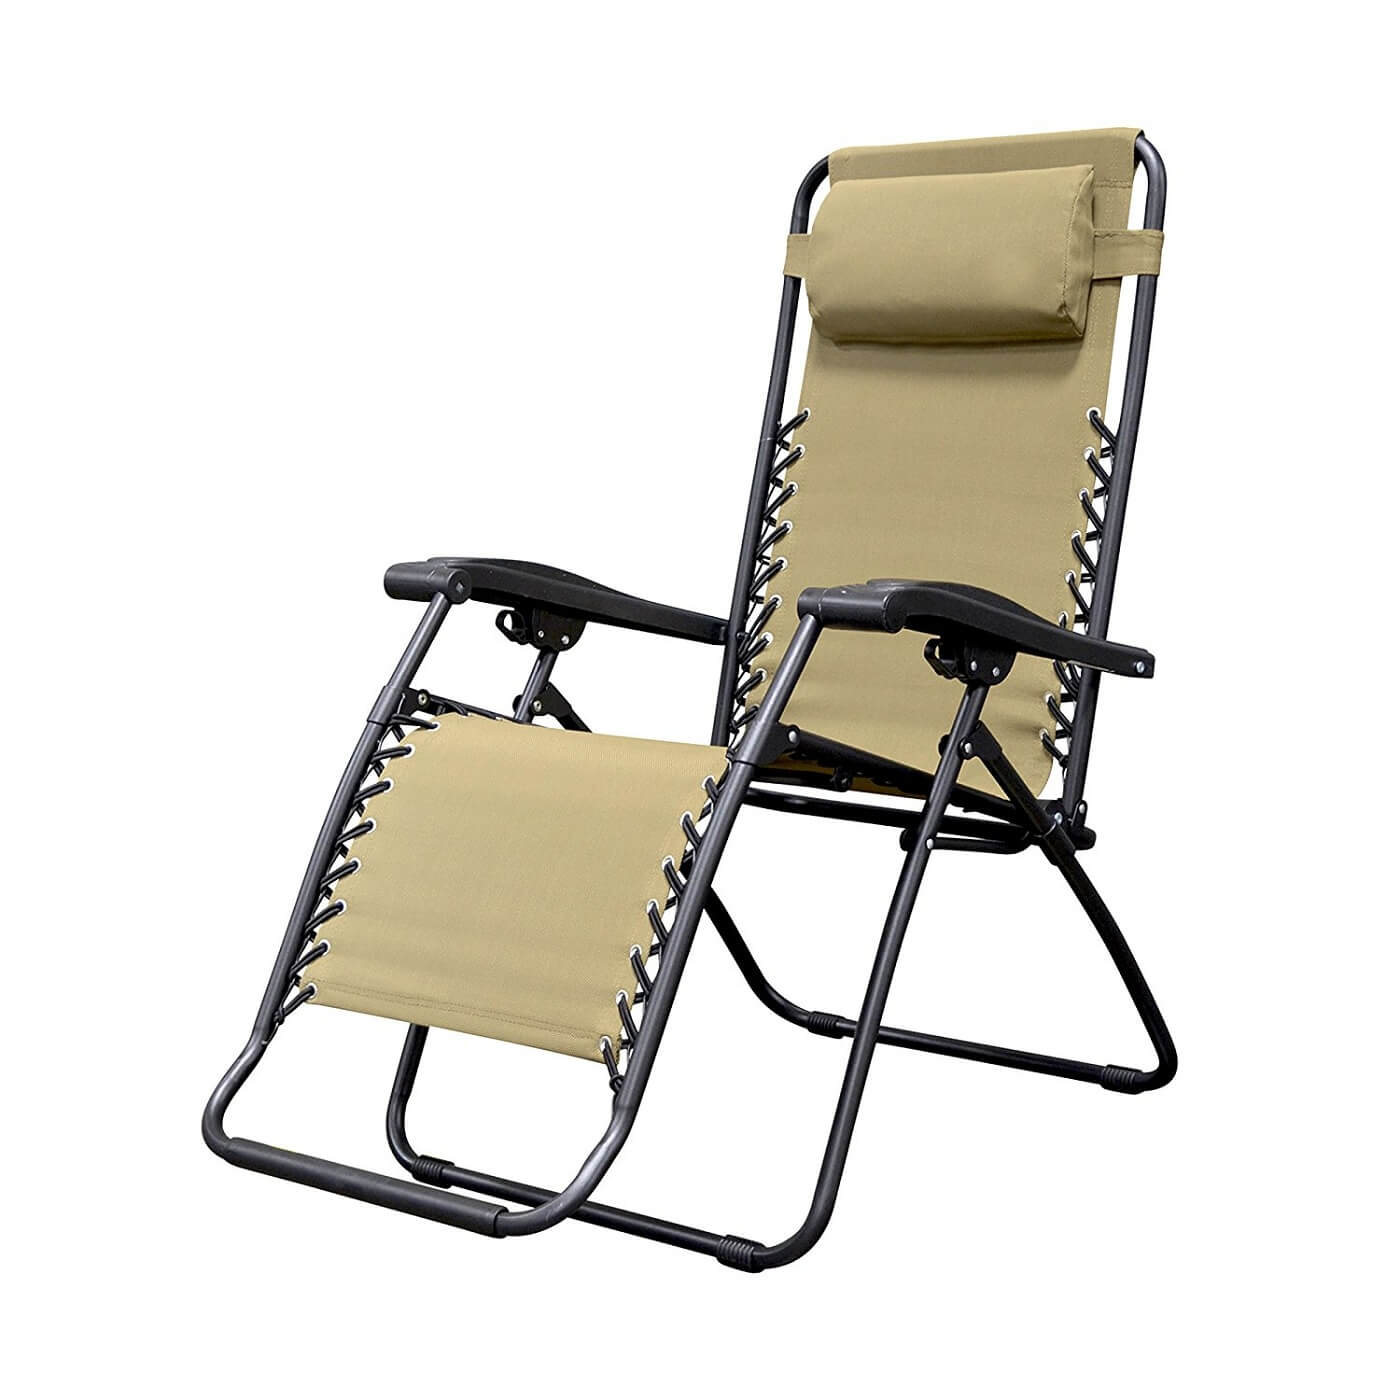 Caravan Zero Gravity Chair Reviews and Buying Guide In 2017